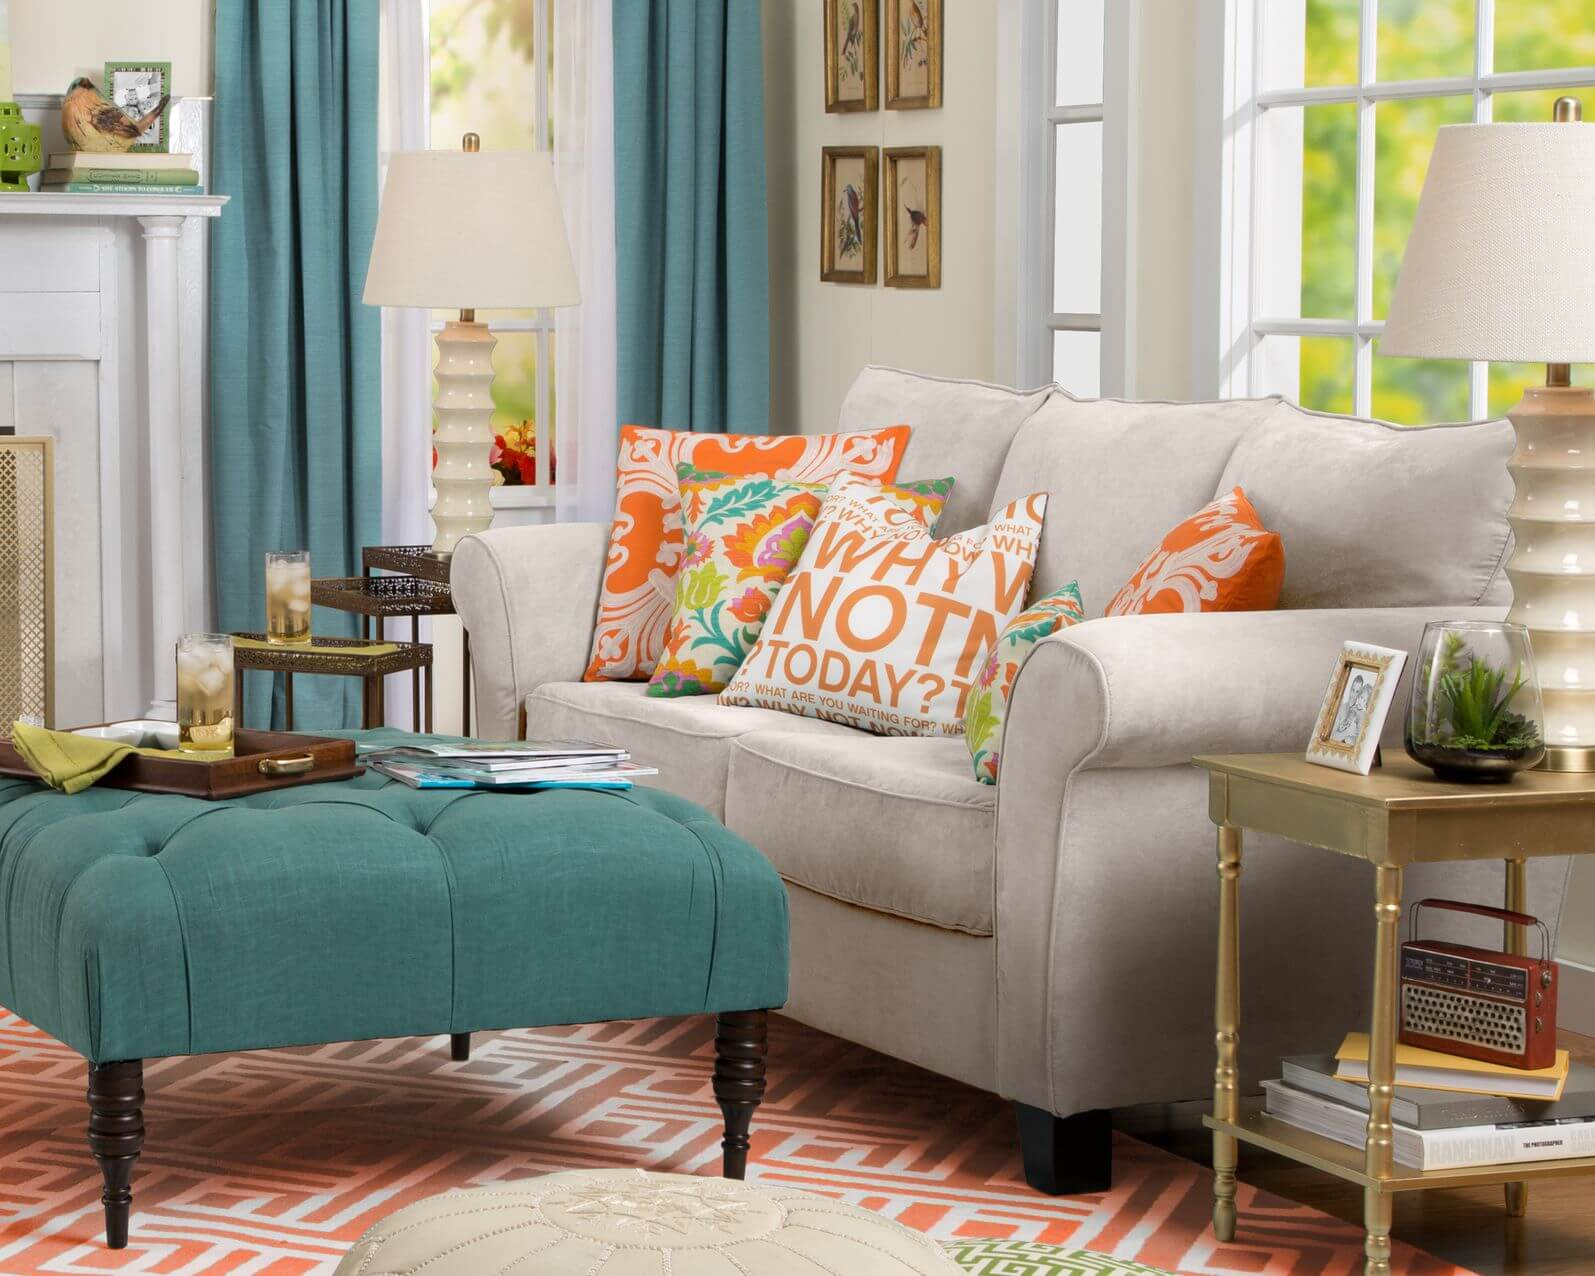 living room without coffee table ideas rustic decorating 50 beautiful rooms with ottoman tables bright contrasting color patterns throughout this featuring neutral toned sofa next to